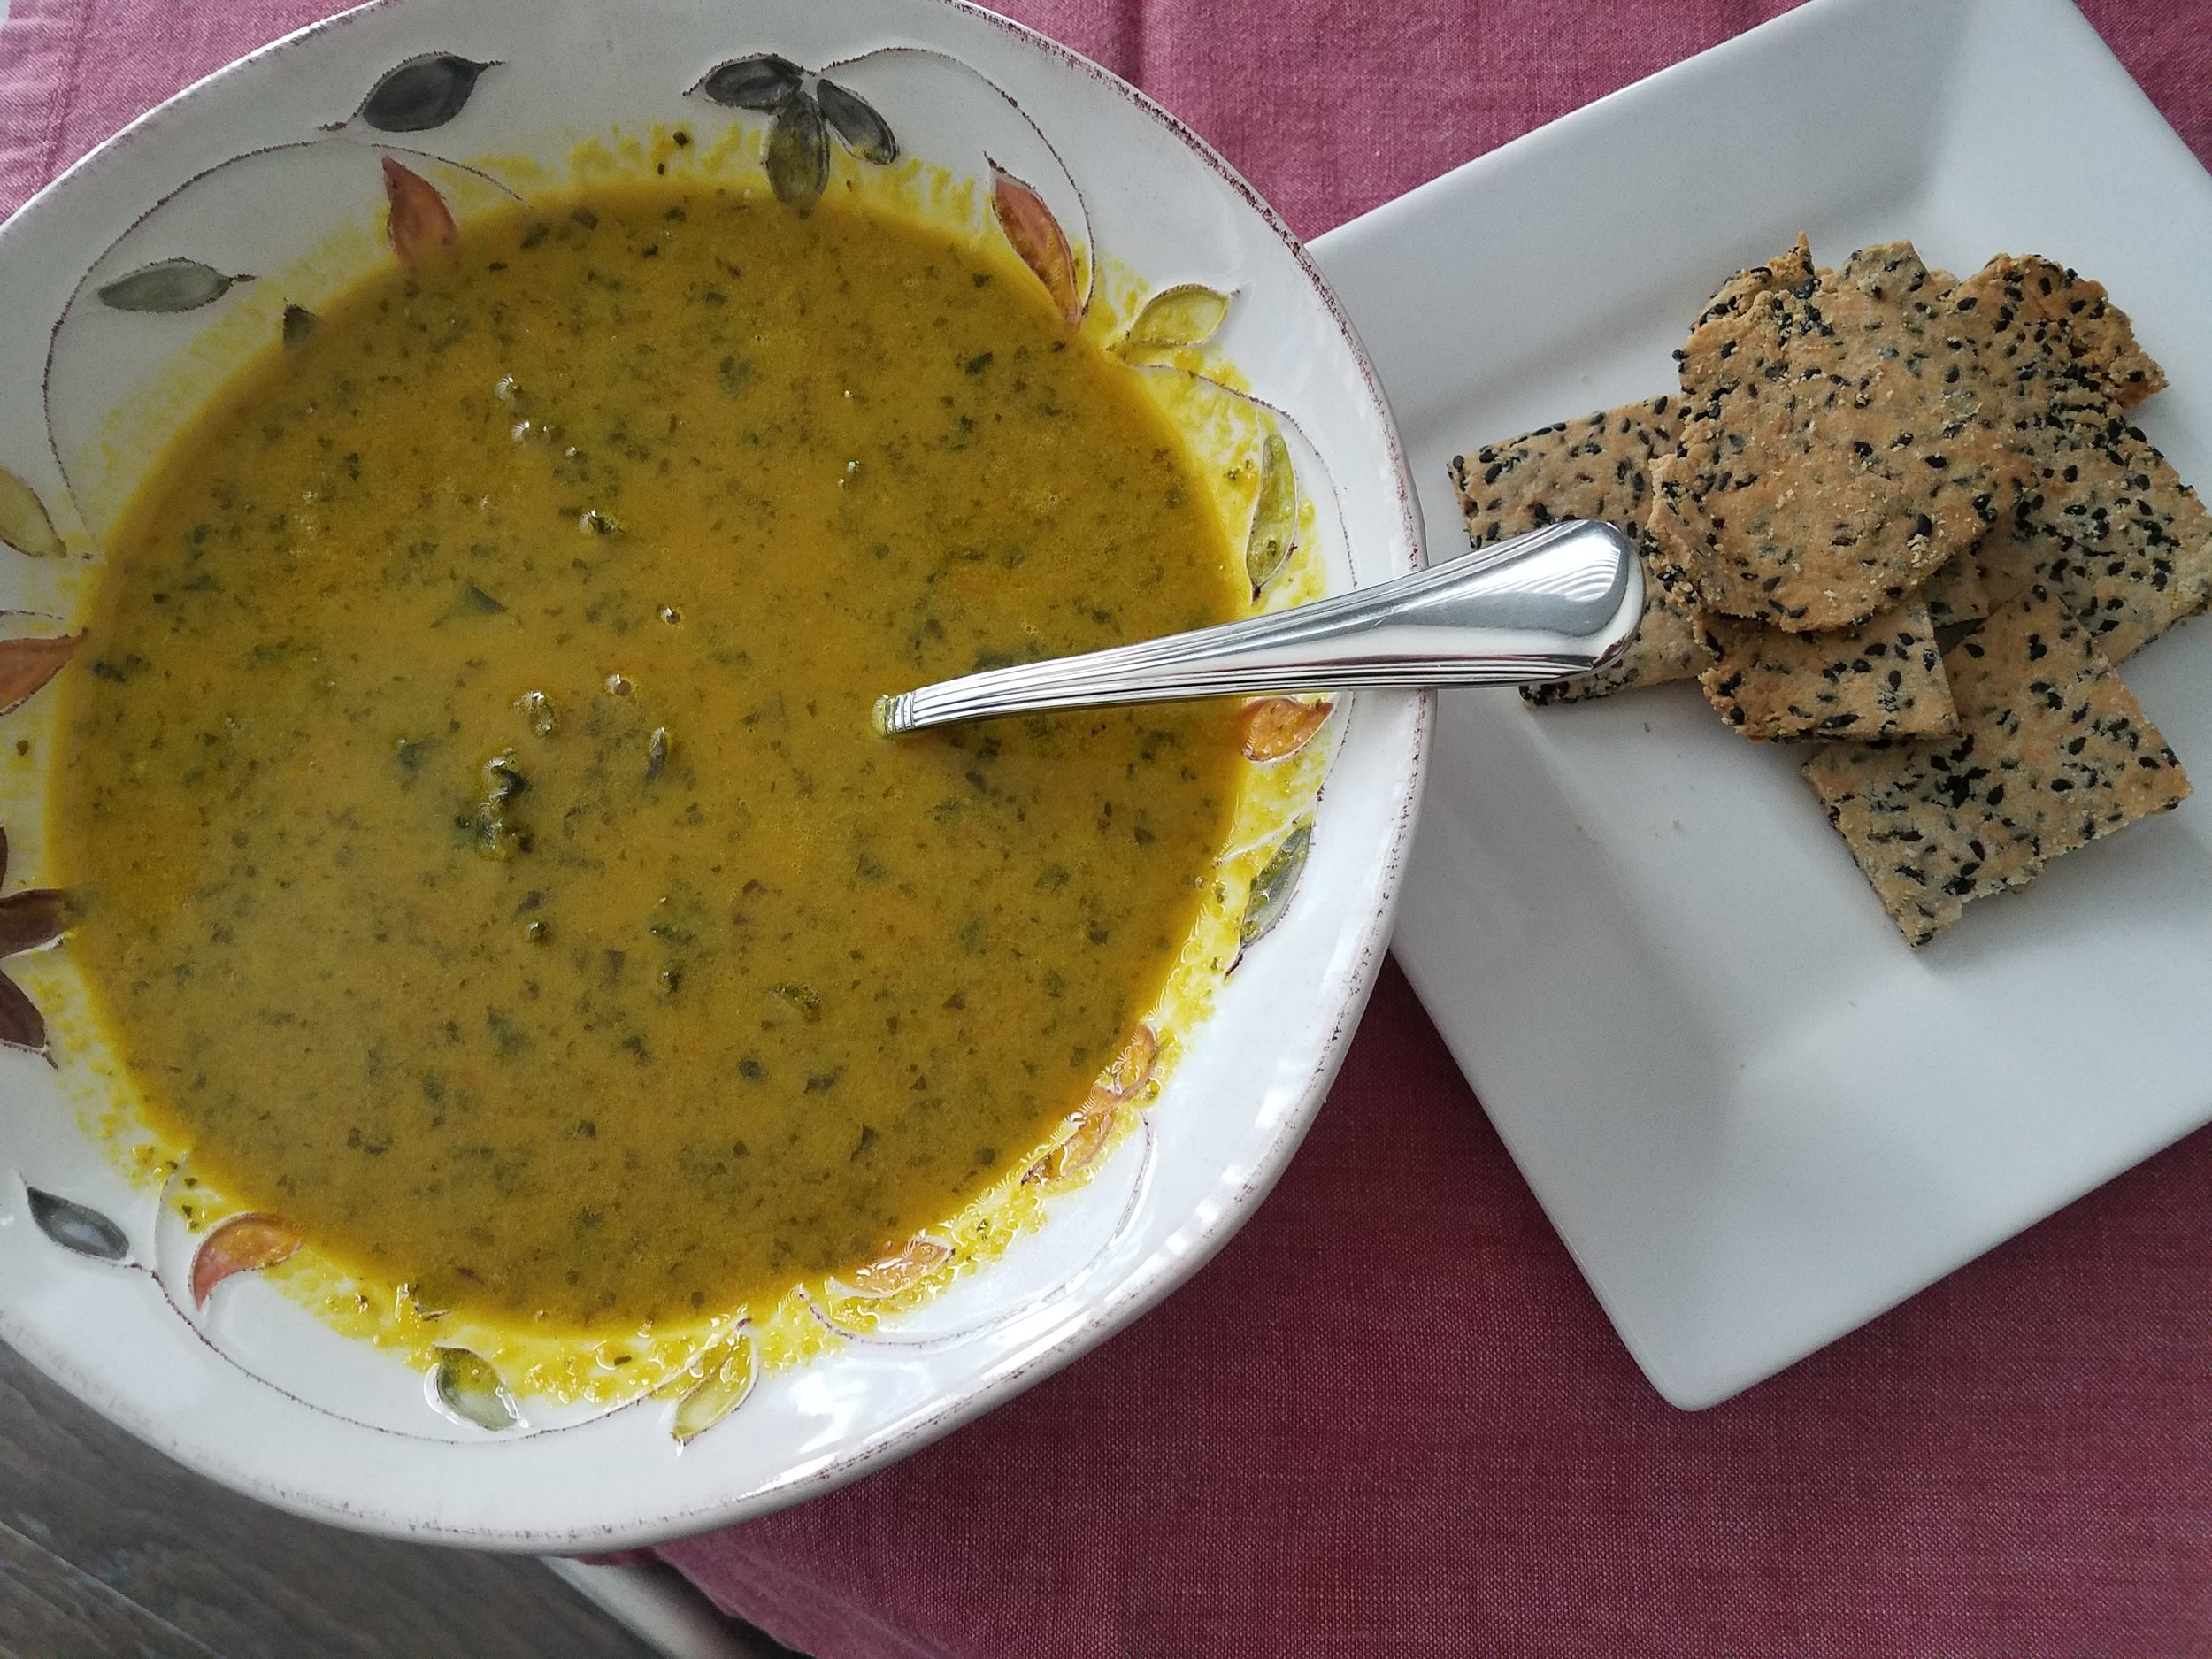 Creamy Carrot & Kale Soup with protein rich sesame crackers by Tam John